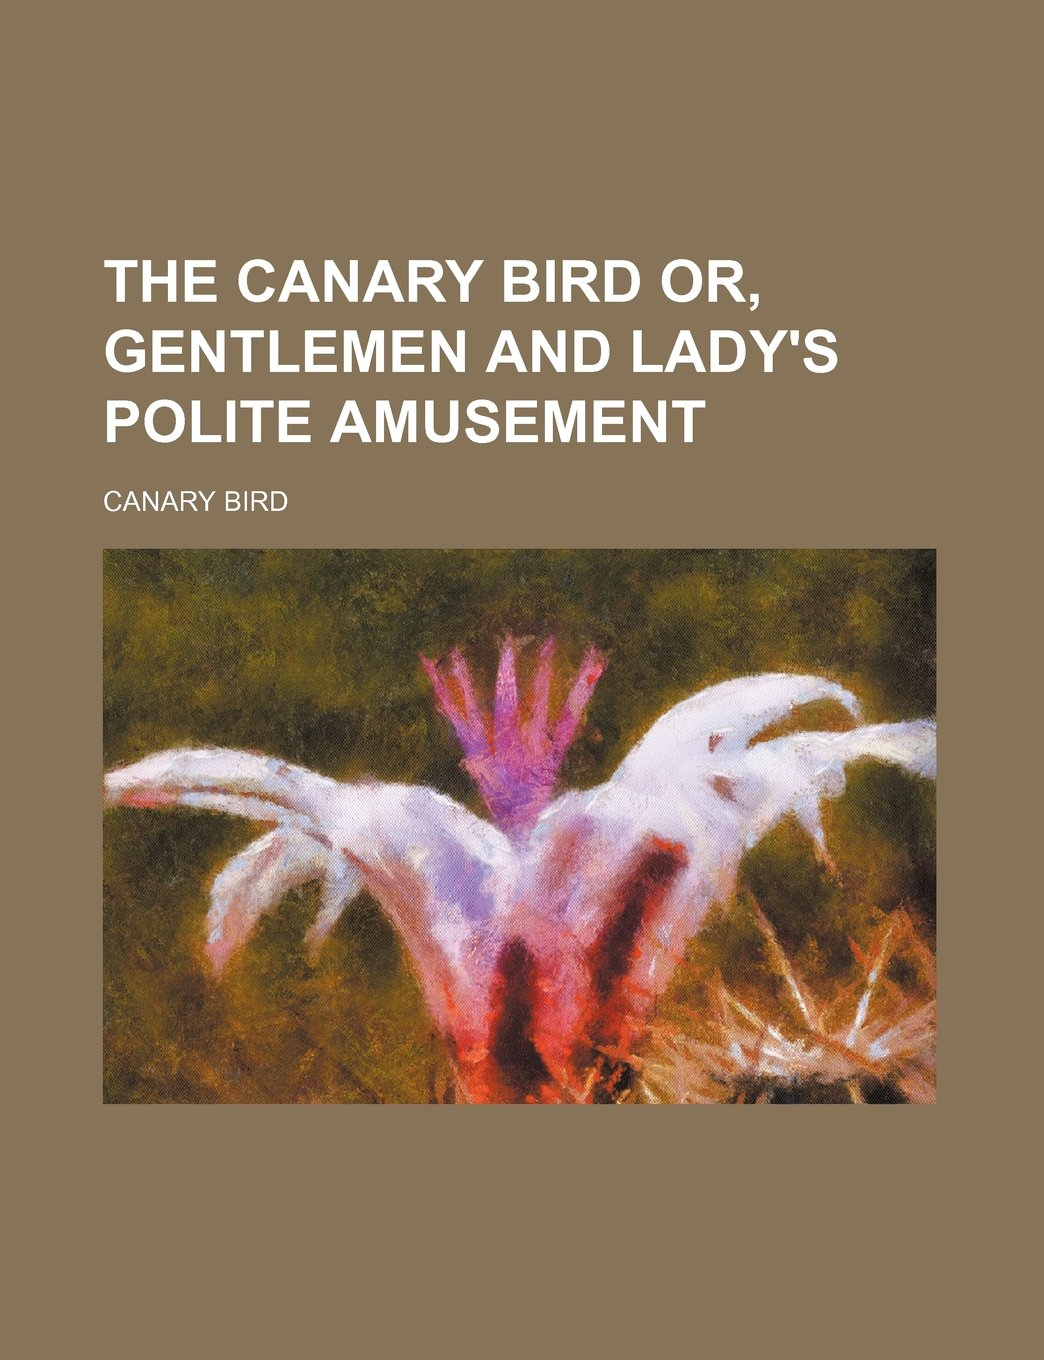 The canary bird or, Gentlemen and lady's polite amusement pdf